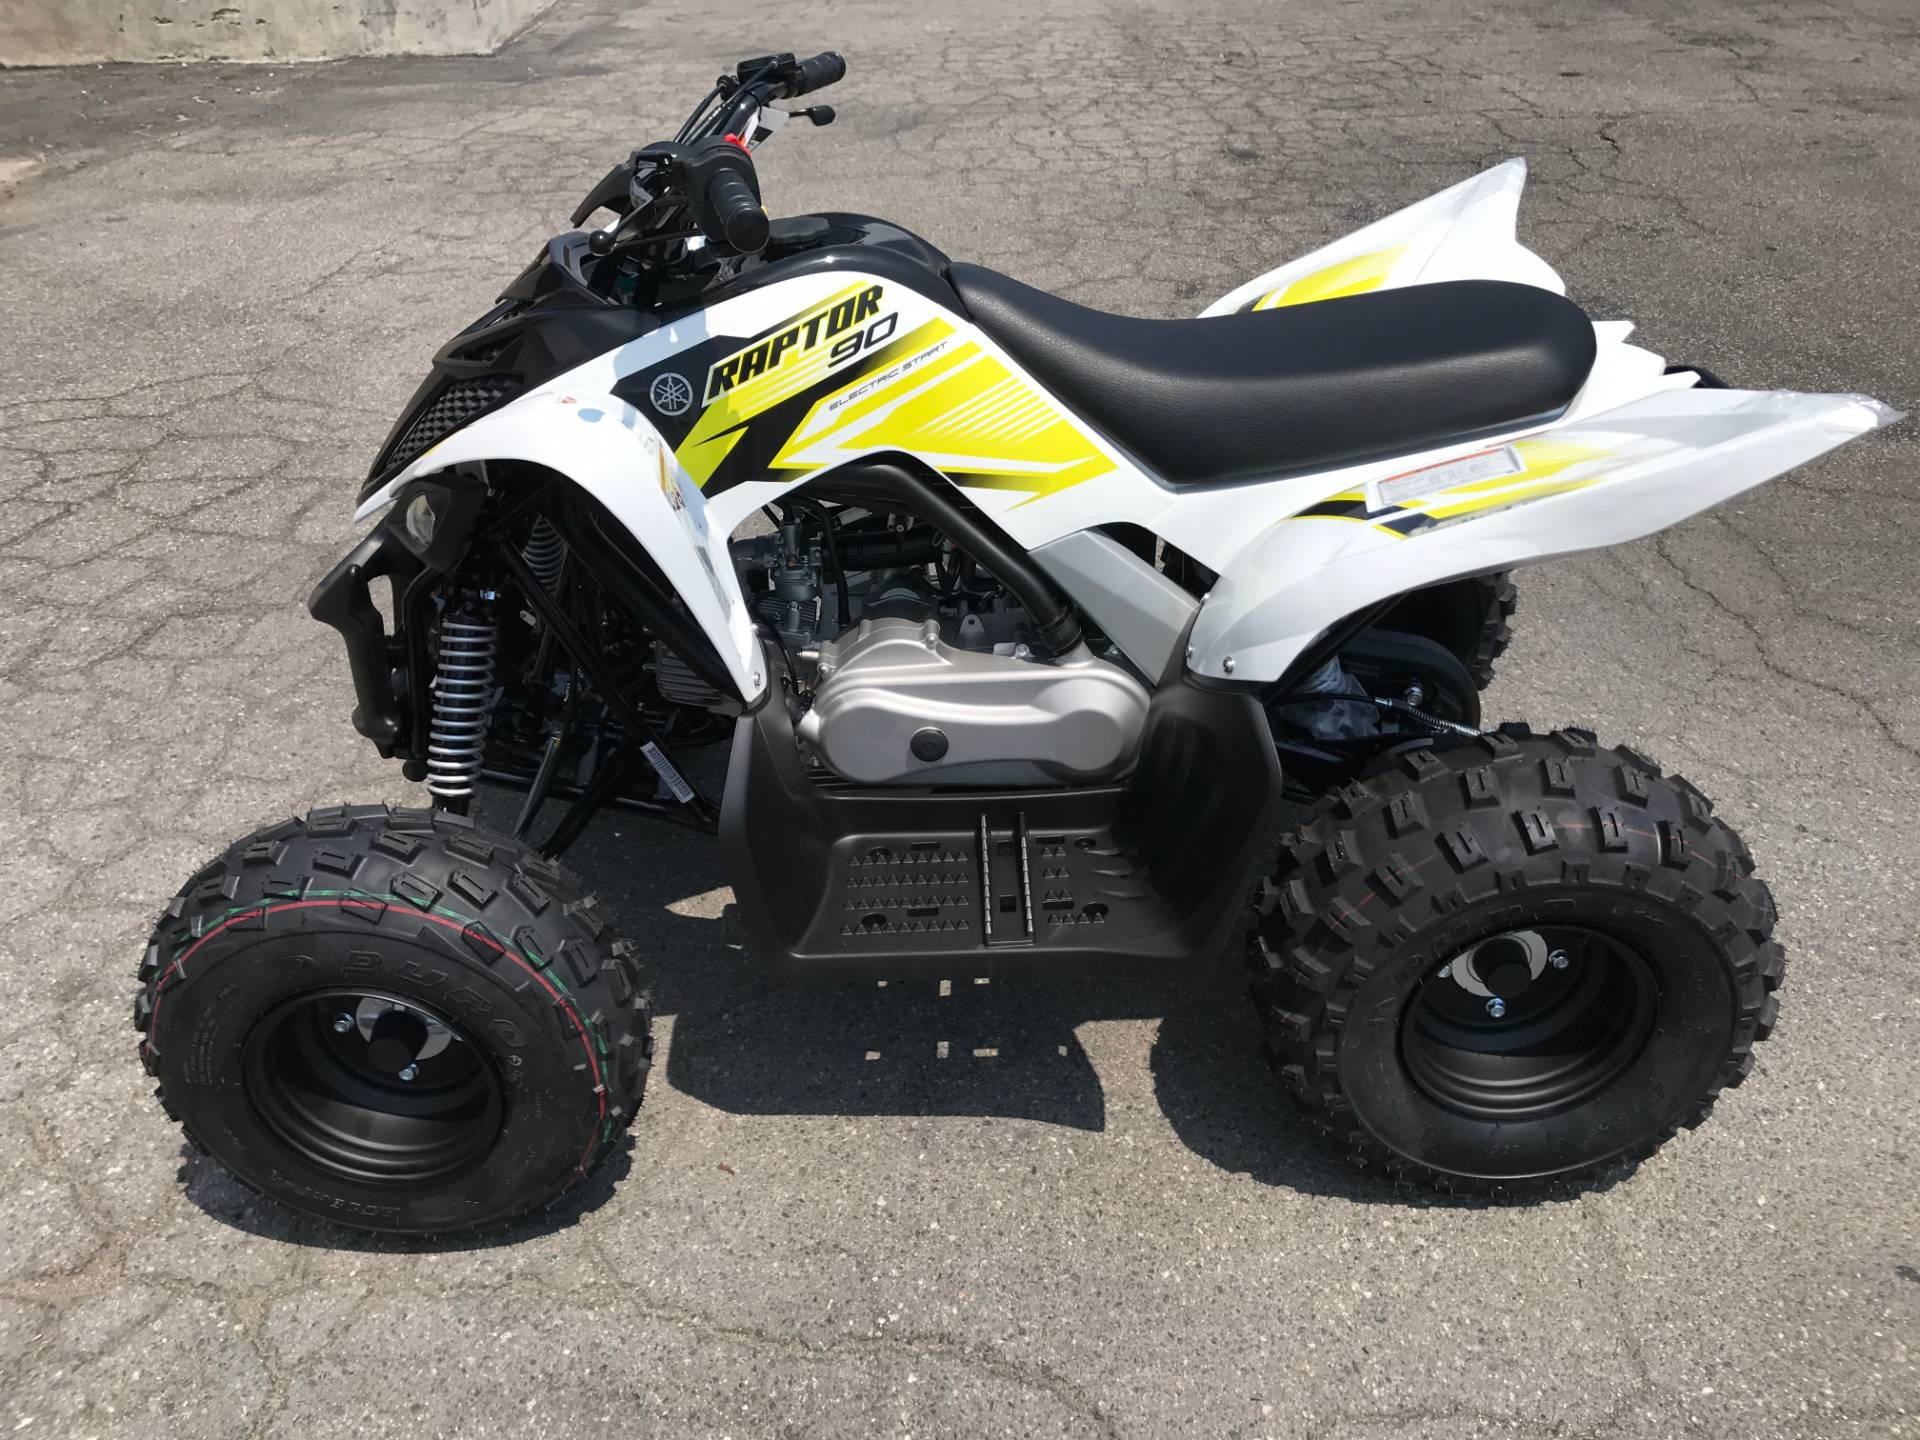 2017 Yamaha Raptor 90 for sale 10566